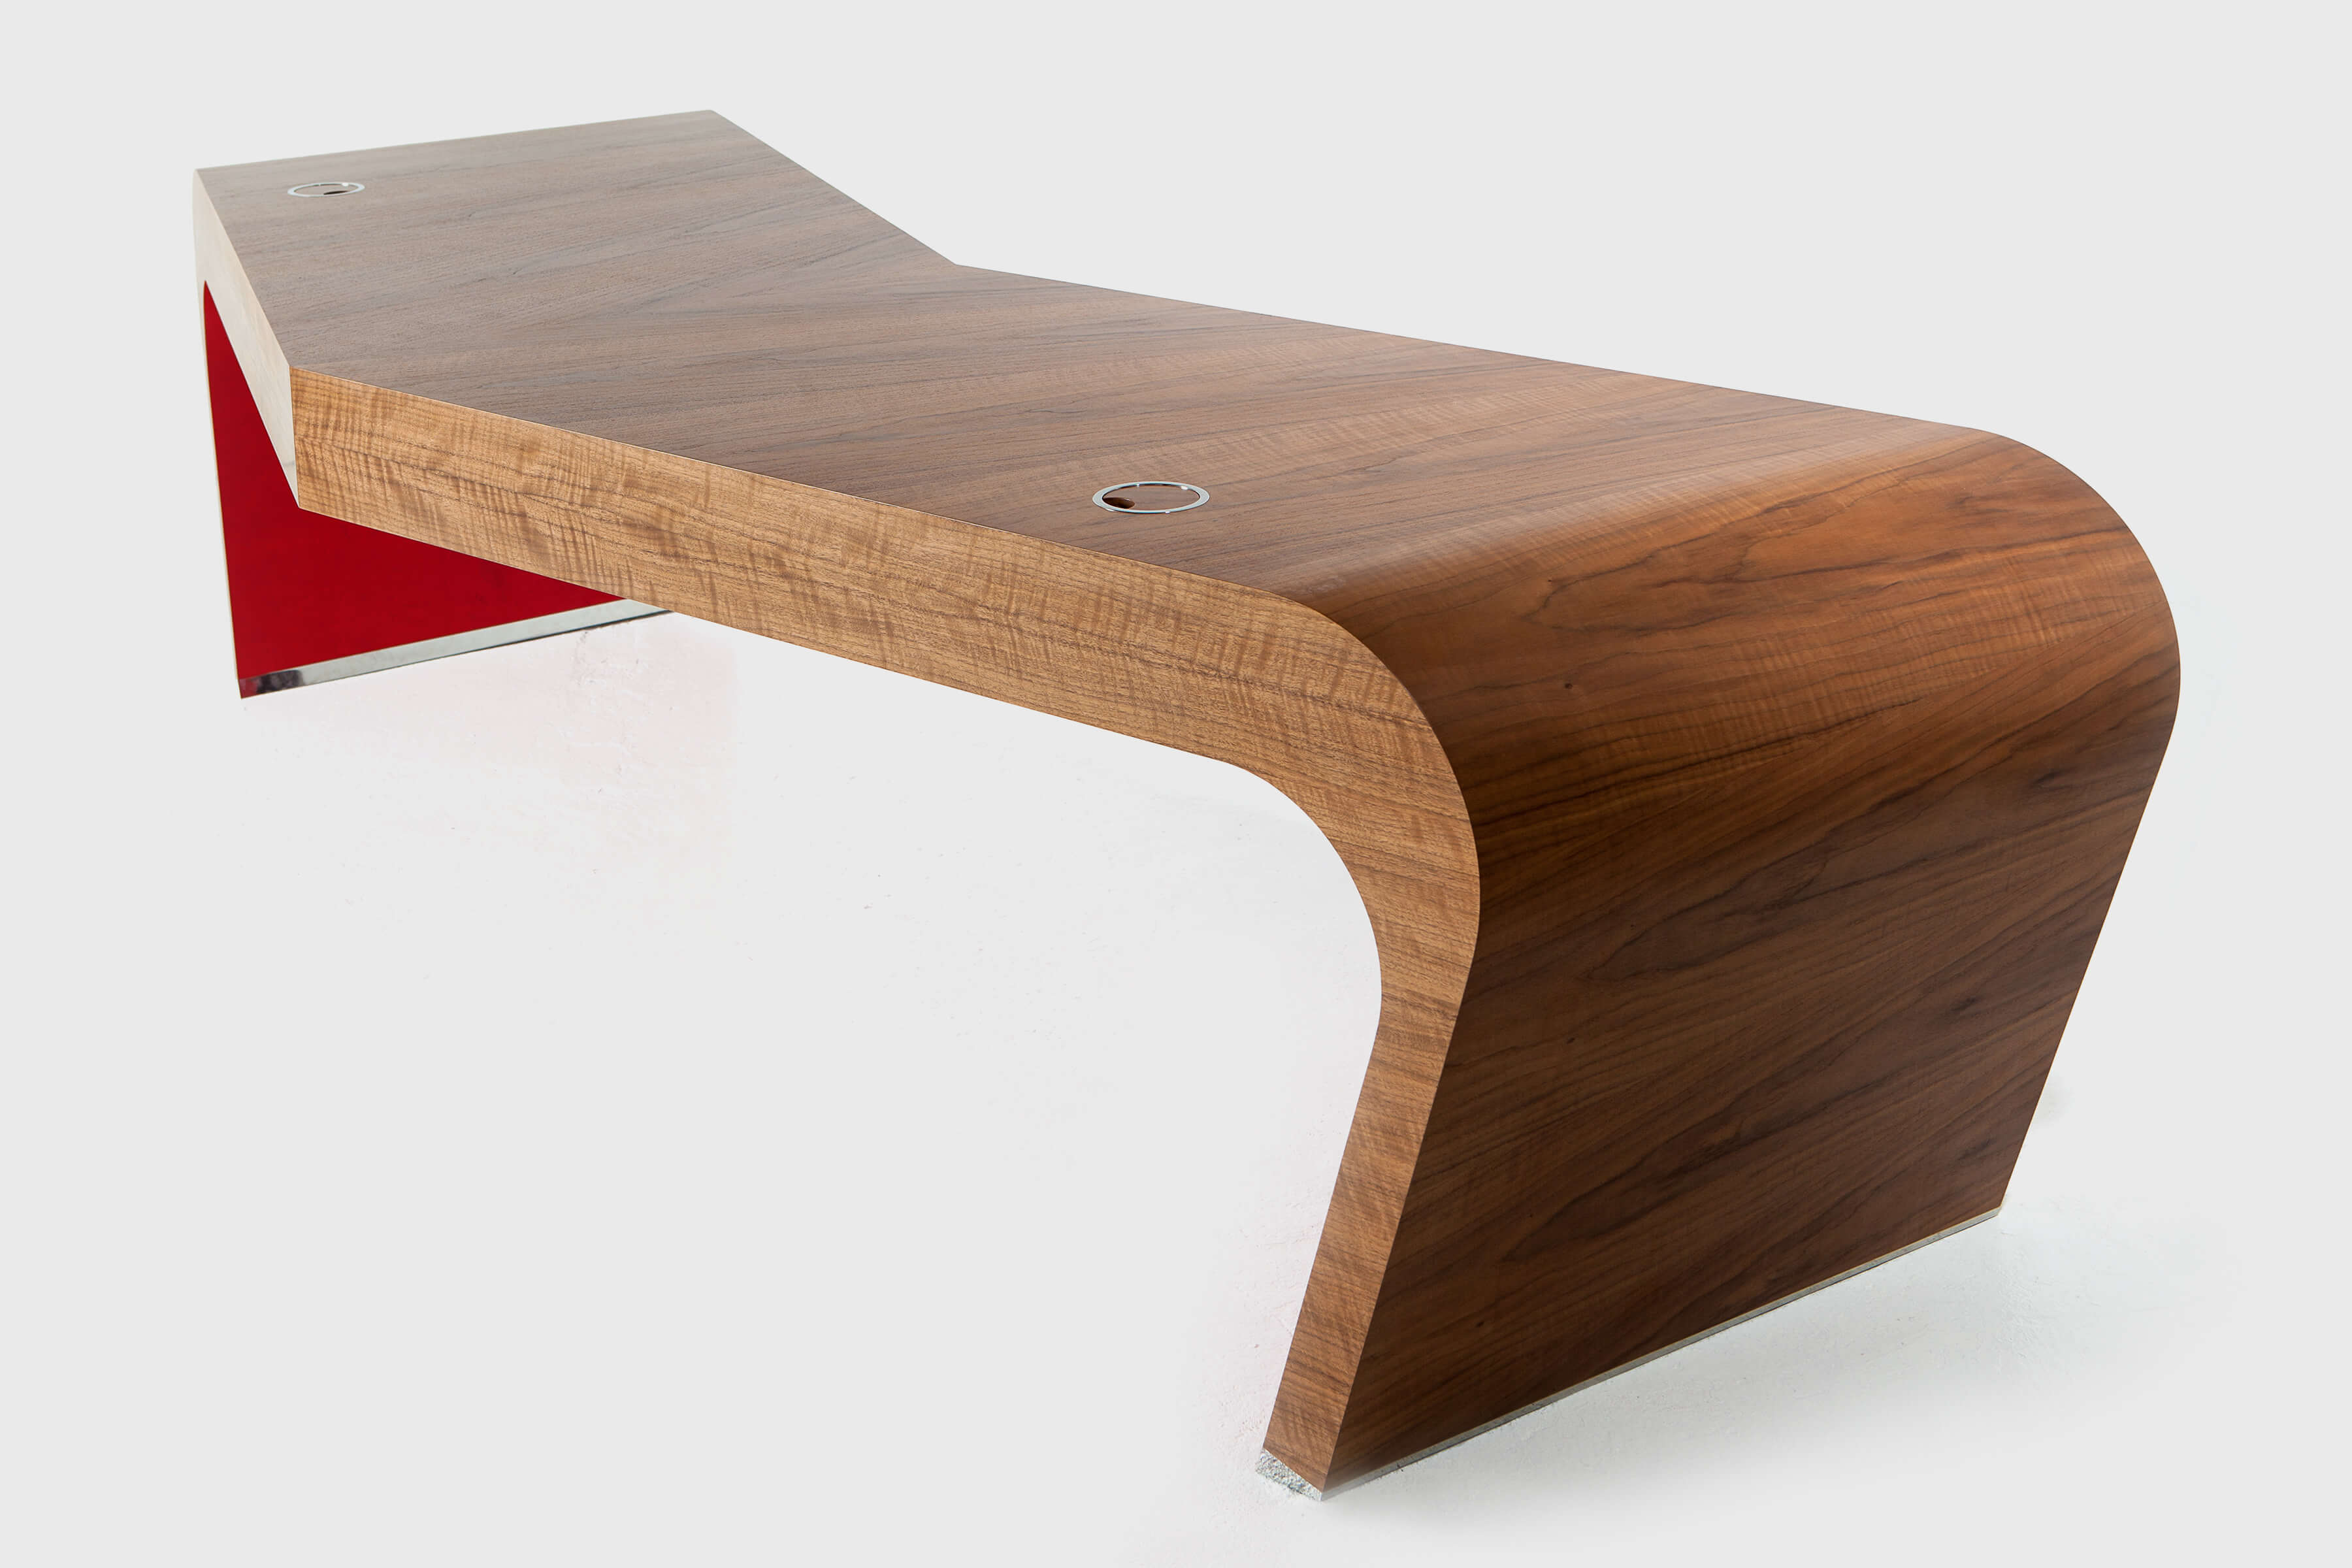 Large v-shaped desk with dramatic red detail hand-crafted by Splinterworks